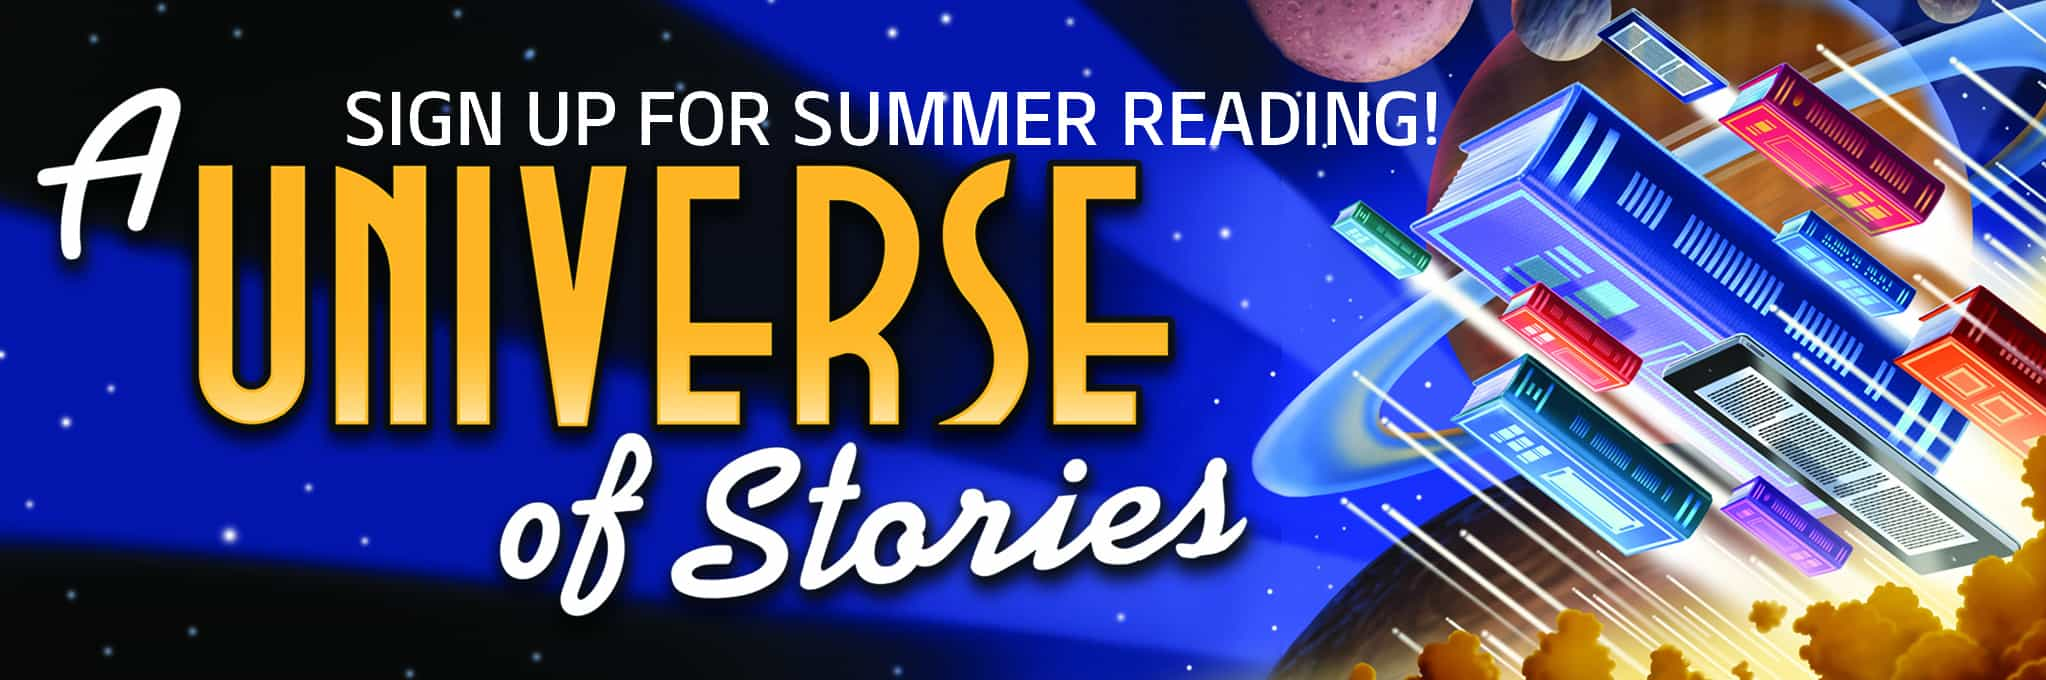 Summer Reading Banner 2019 copy